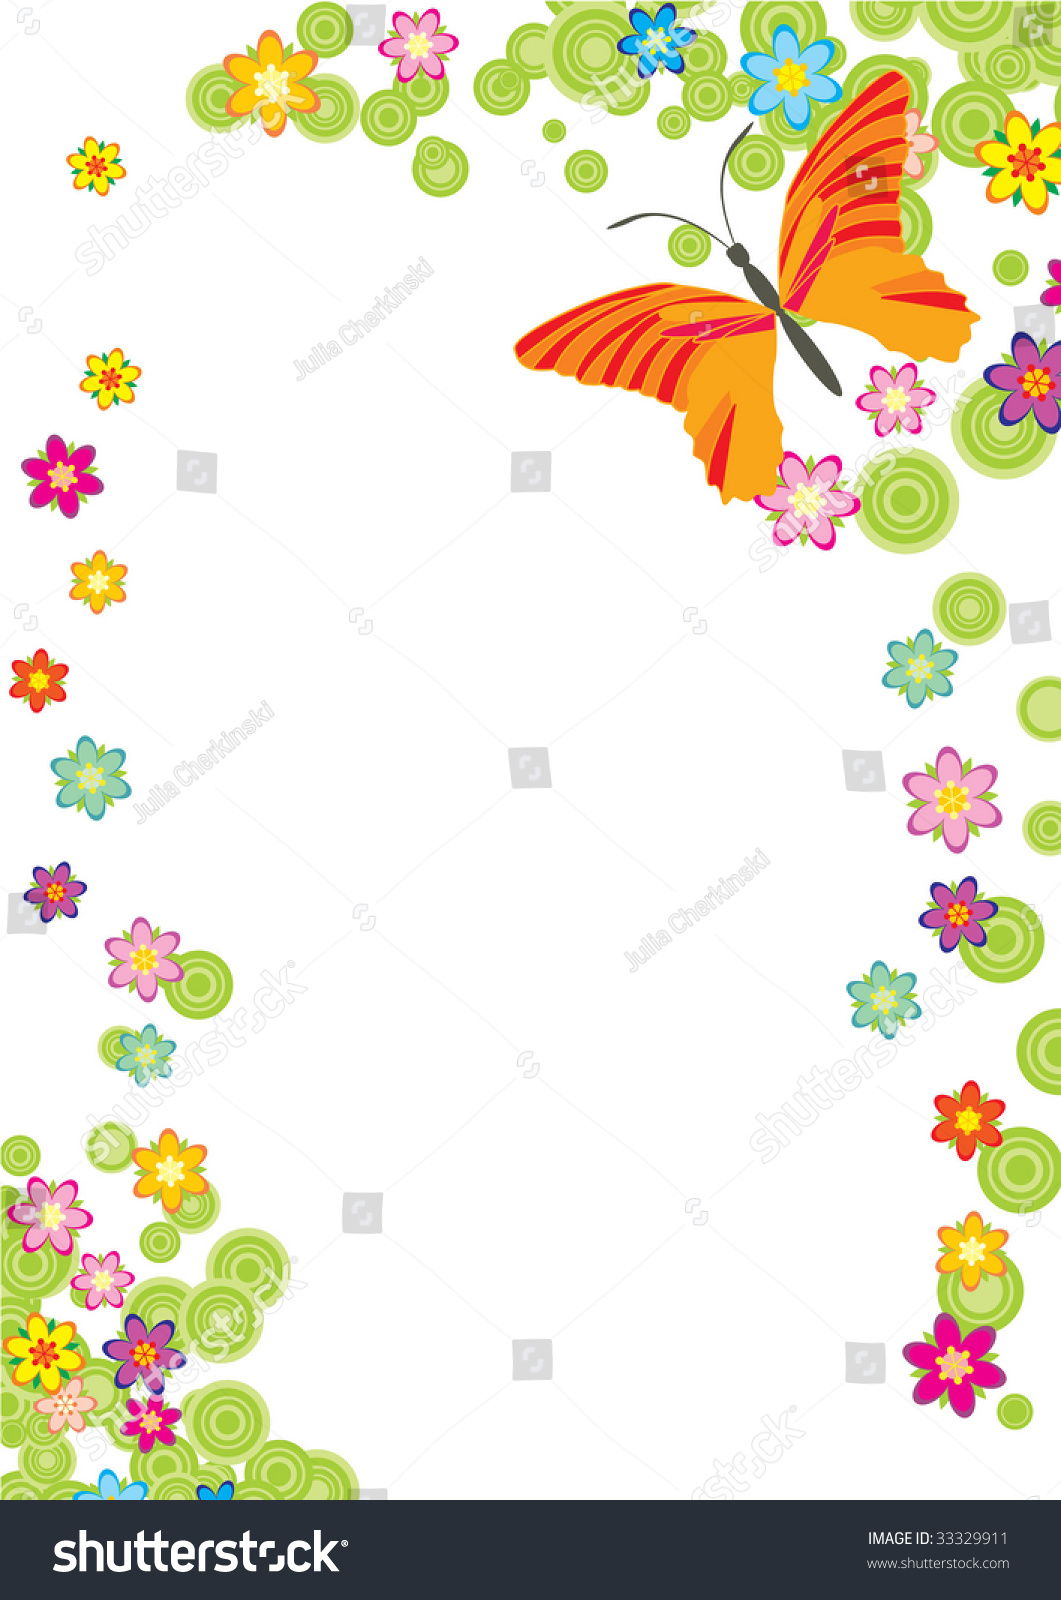 flower butterfly frame